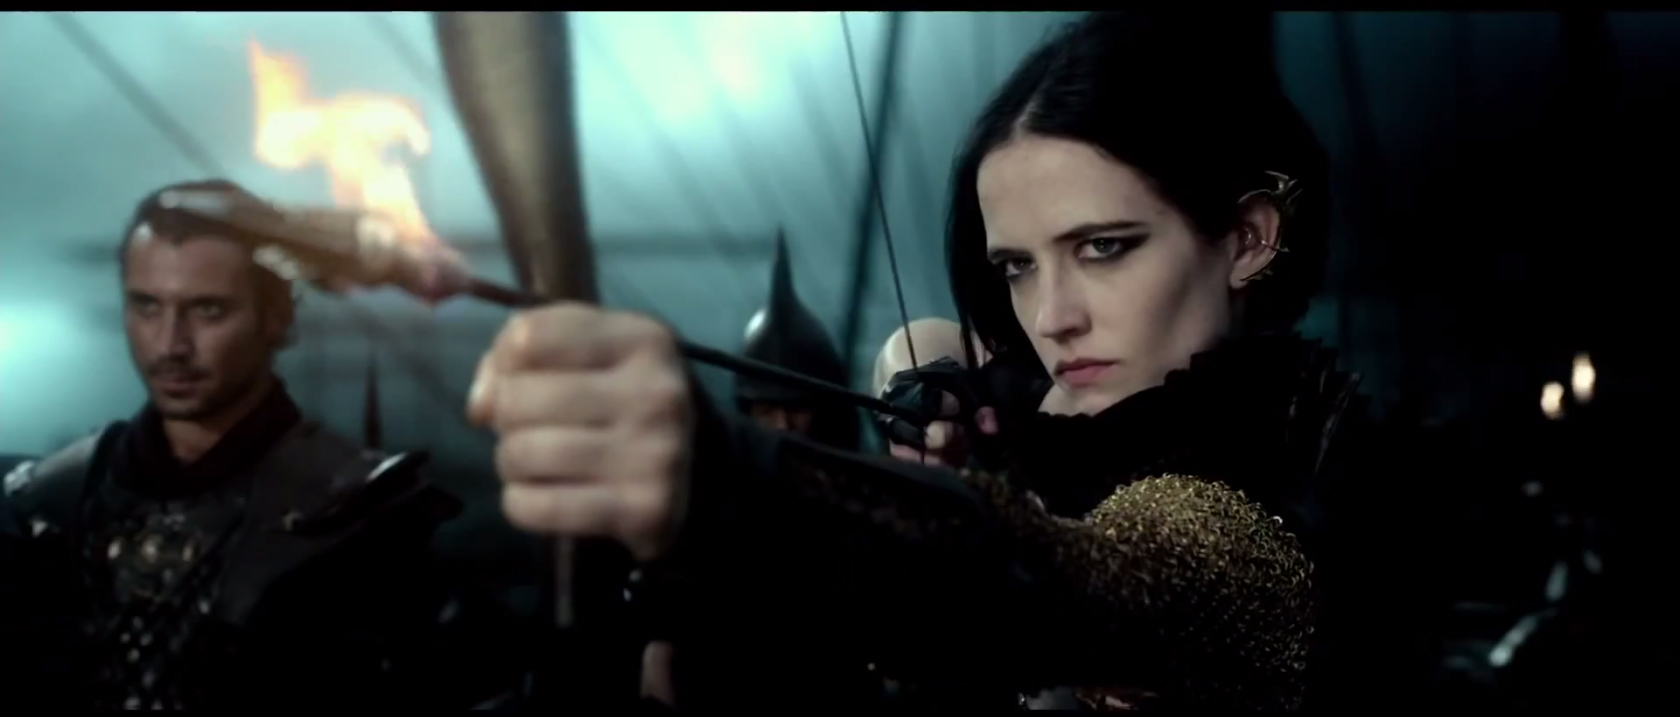 300: Rise of an Empire (Trailer #1) Review | Tim's Film ... Eva Green Review